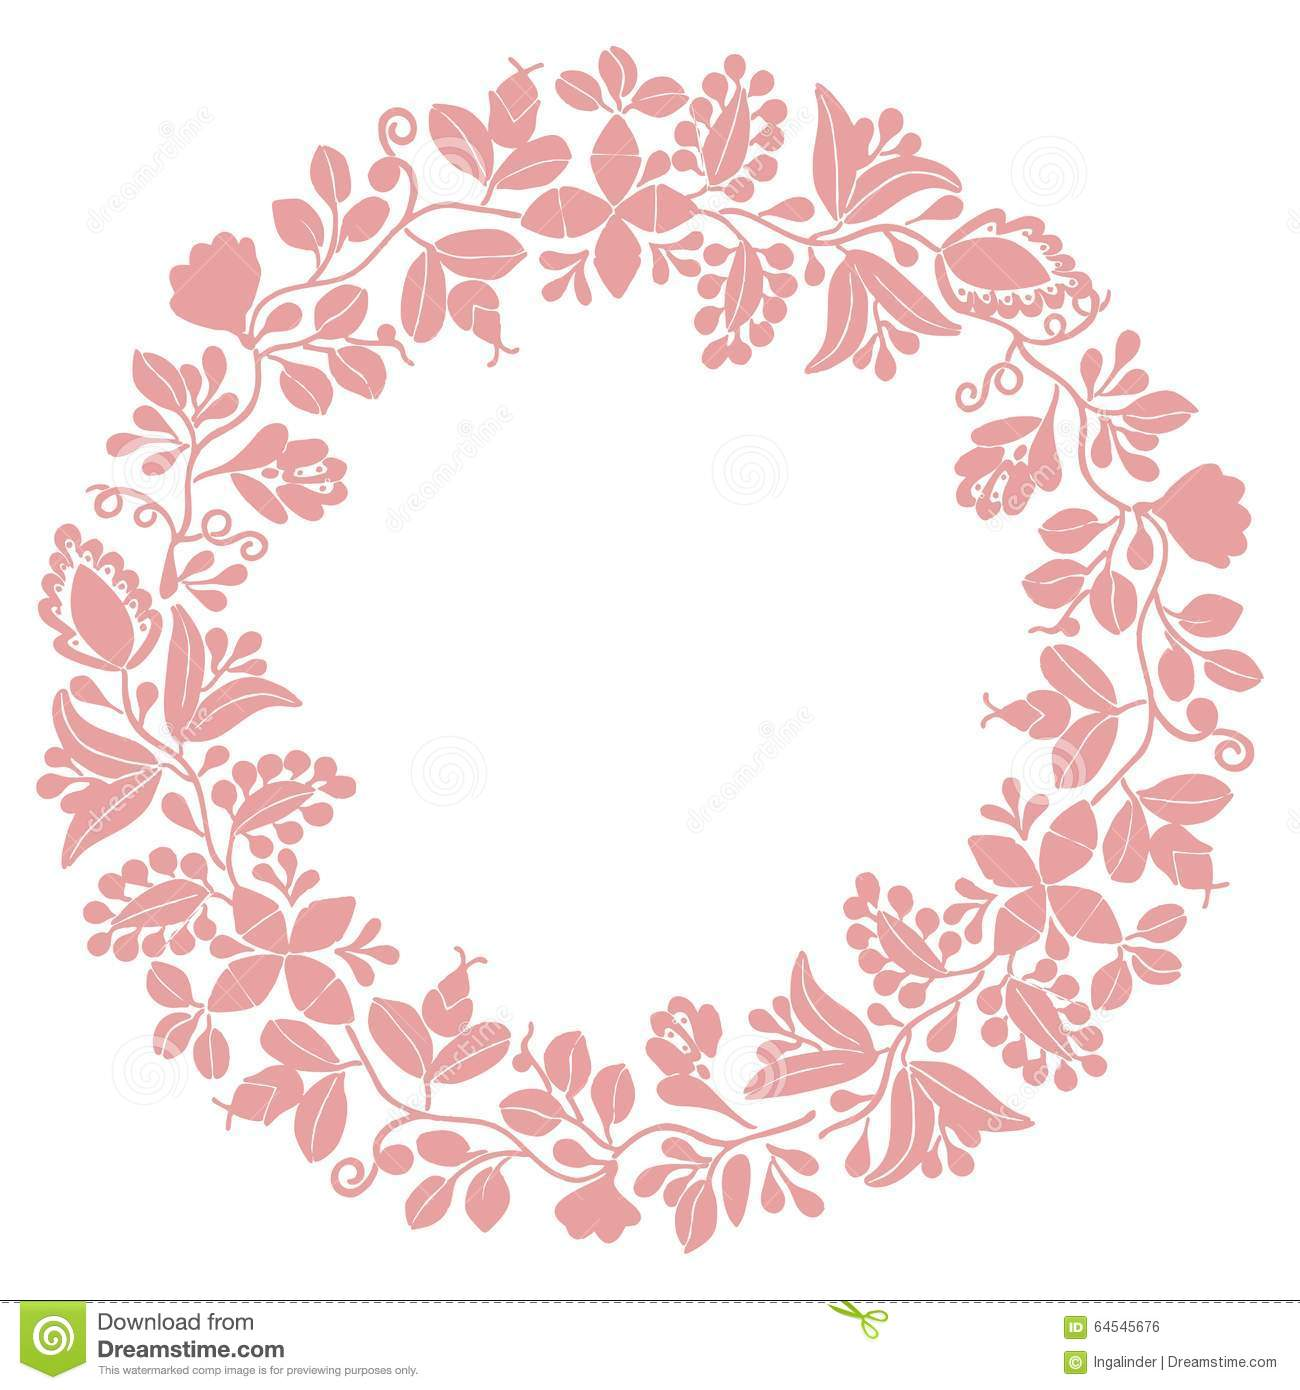 Vector round frame with pink flowers on white background in pastel - Background Frame Laurel Pink Vector White Wreath Graphic Picture Element Christmas Insignia Glory Round Sweet Flower